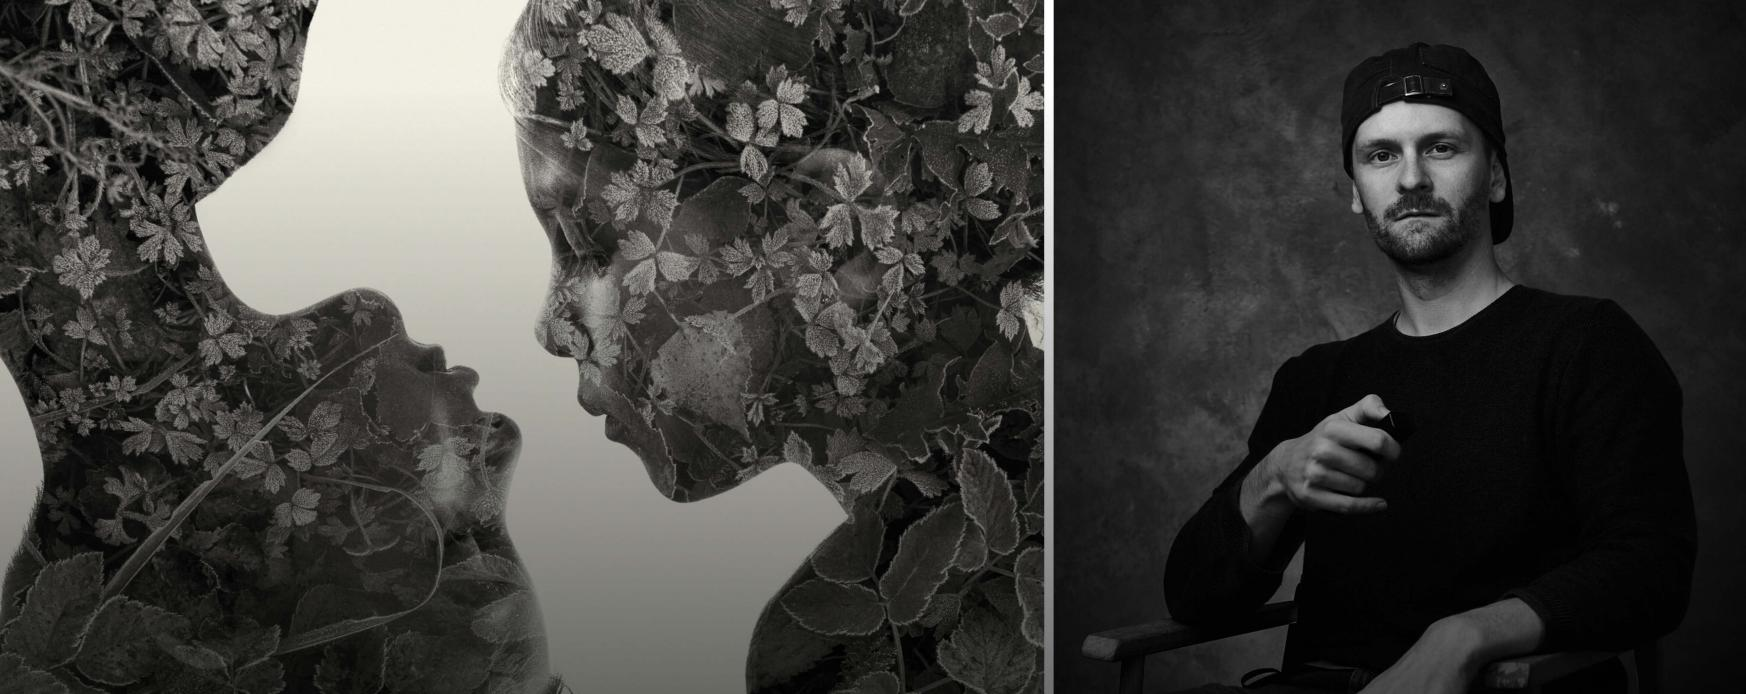 Christoffer Relander - photo exhibition at The Nordic institute on Åland